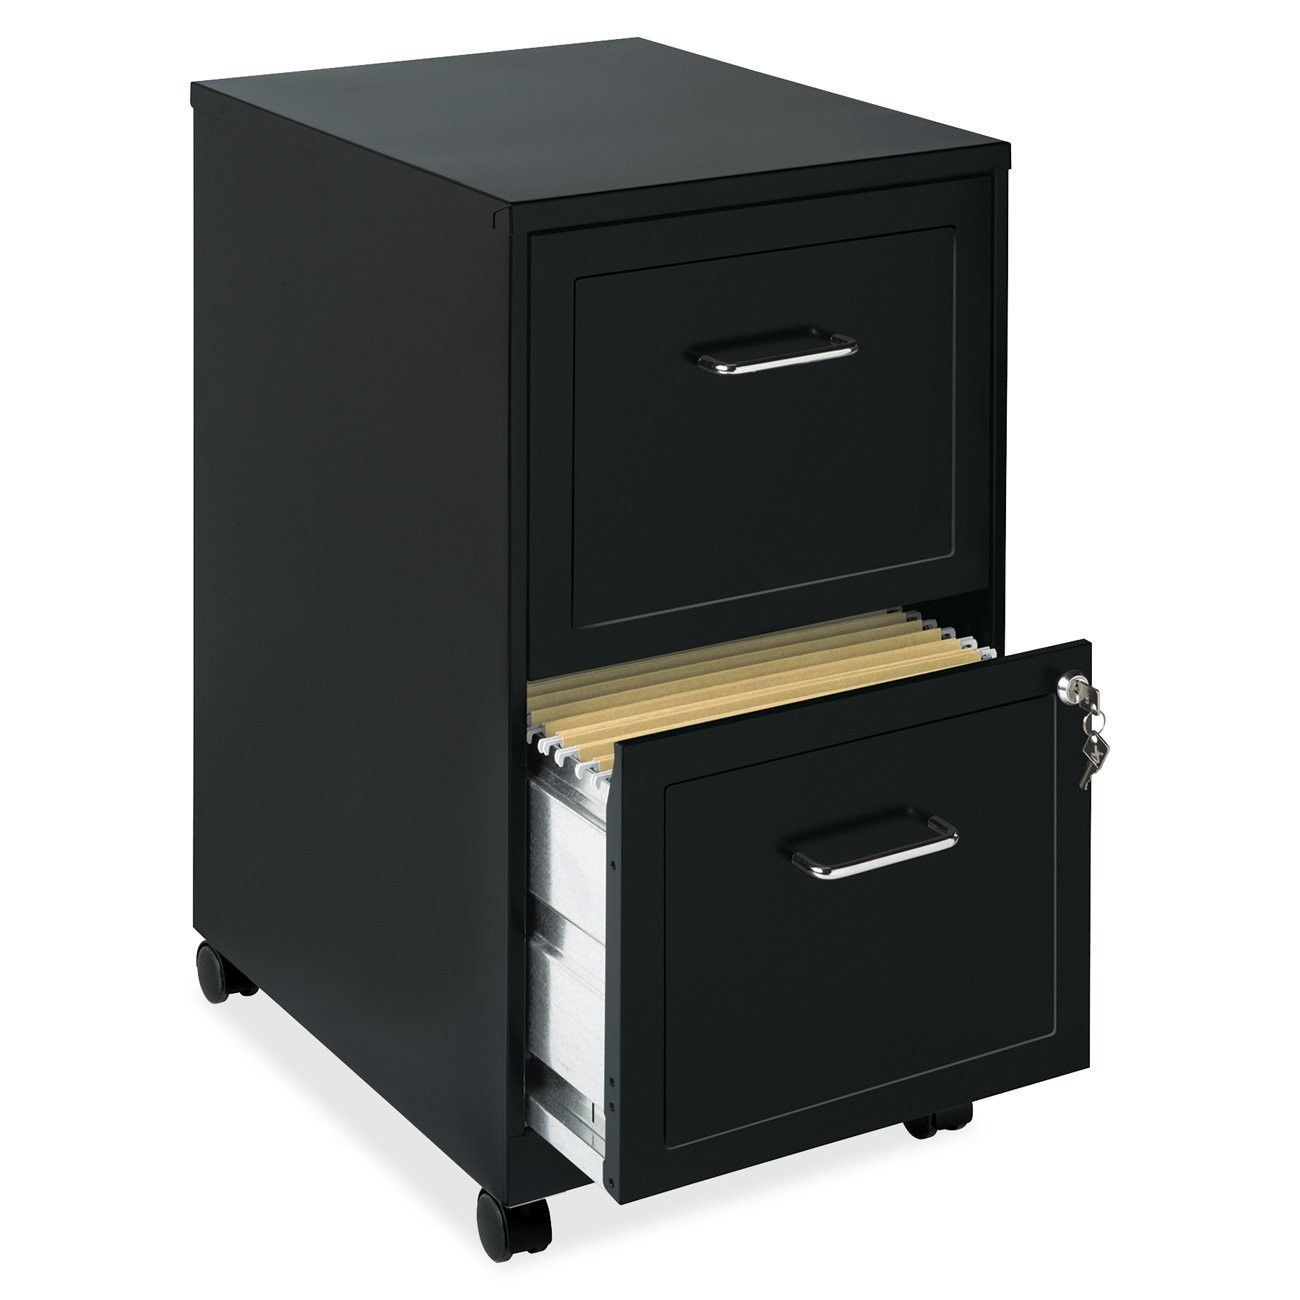 Lorell 2 Drawer Locking Sturdy Mobile File Cabinet With Wheels Filing Cabinet Mobile File Cabinet Drawer Filing Cabinet